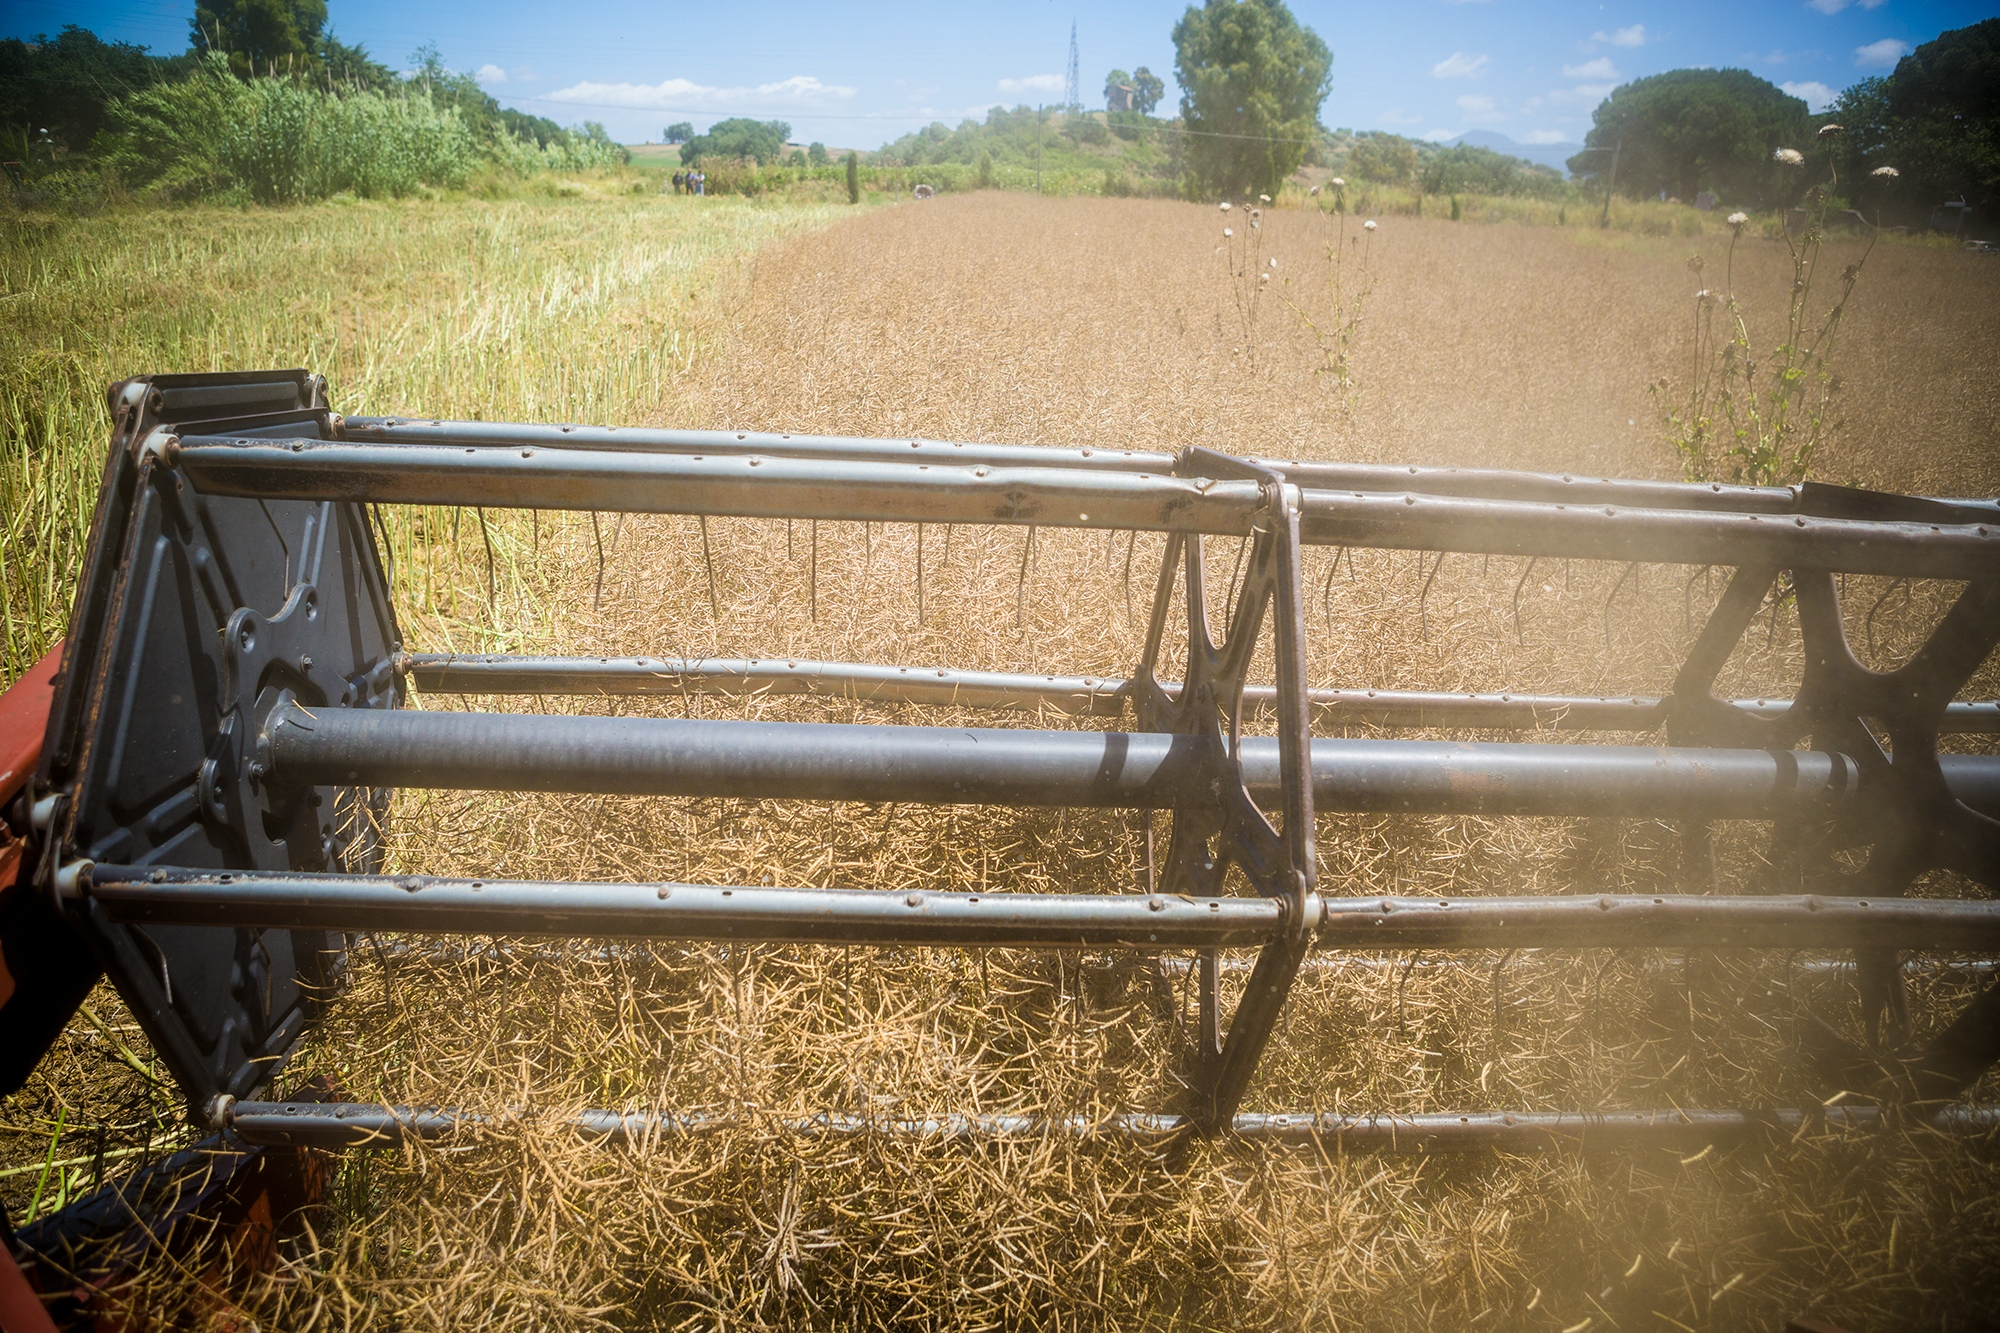 Wheat being harvested at a local farm